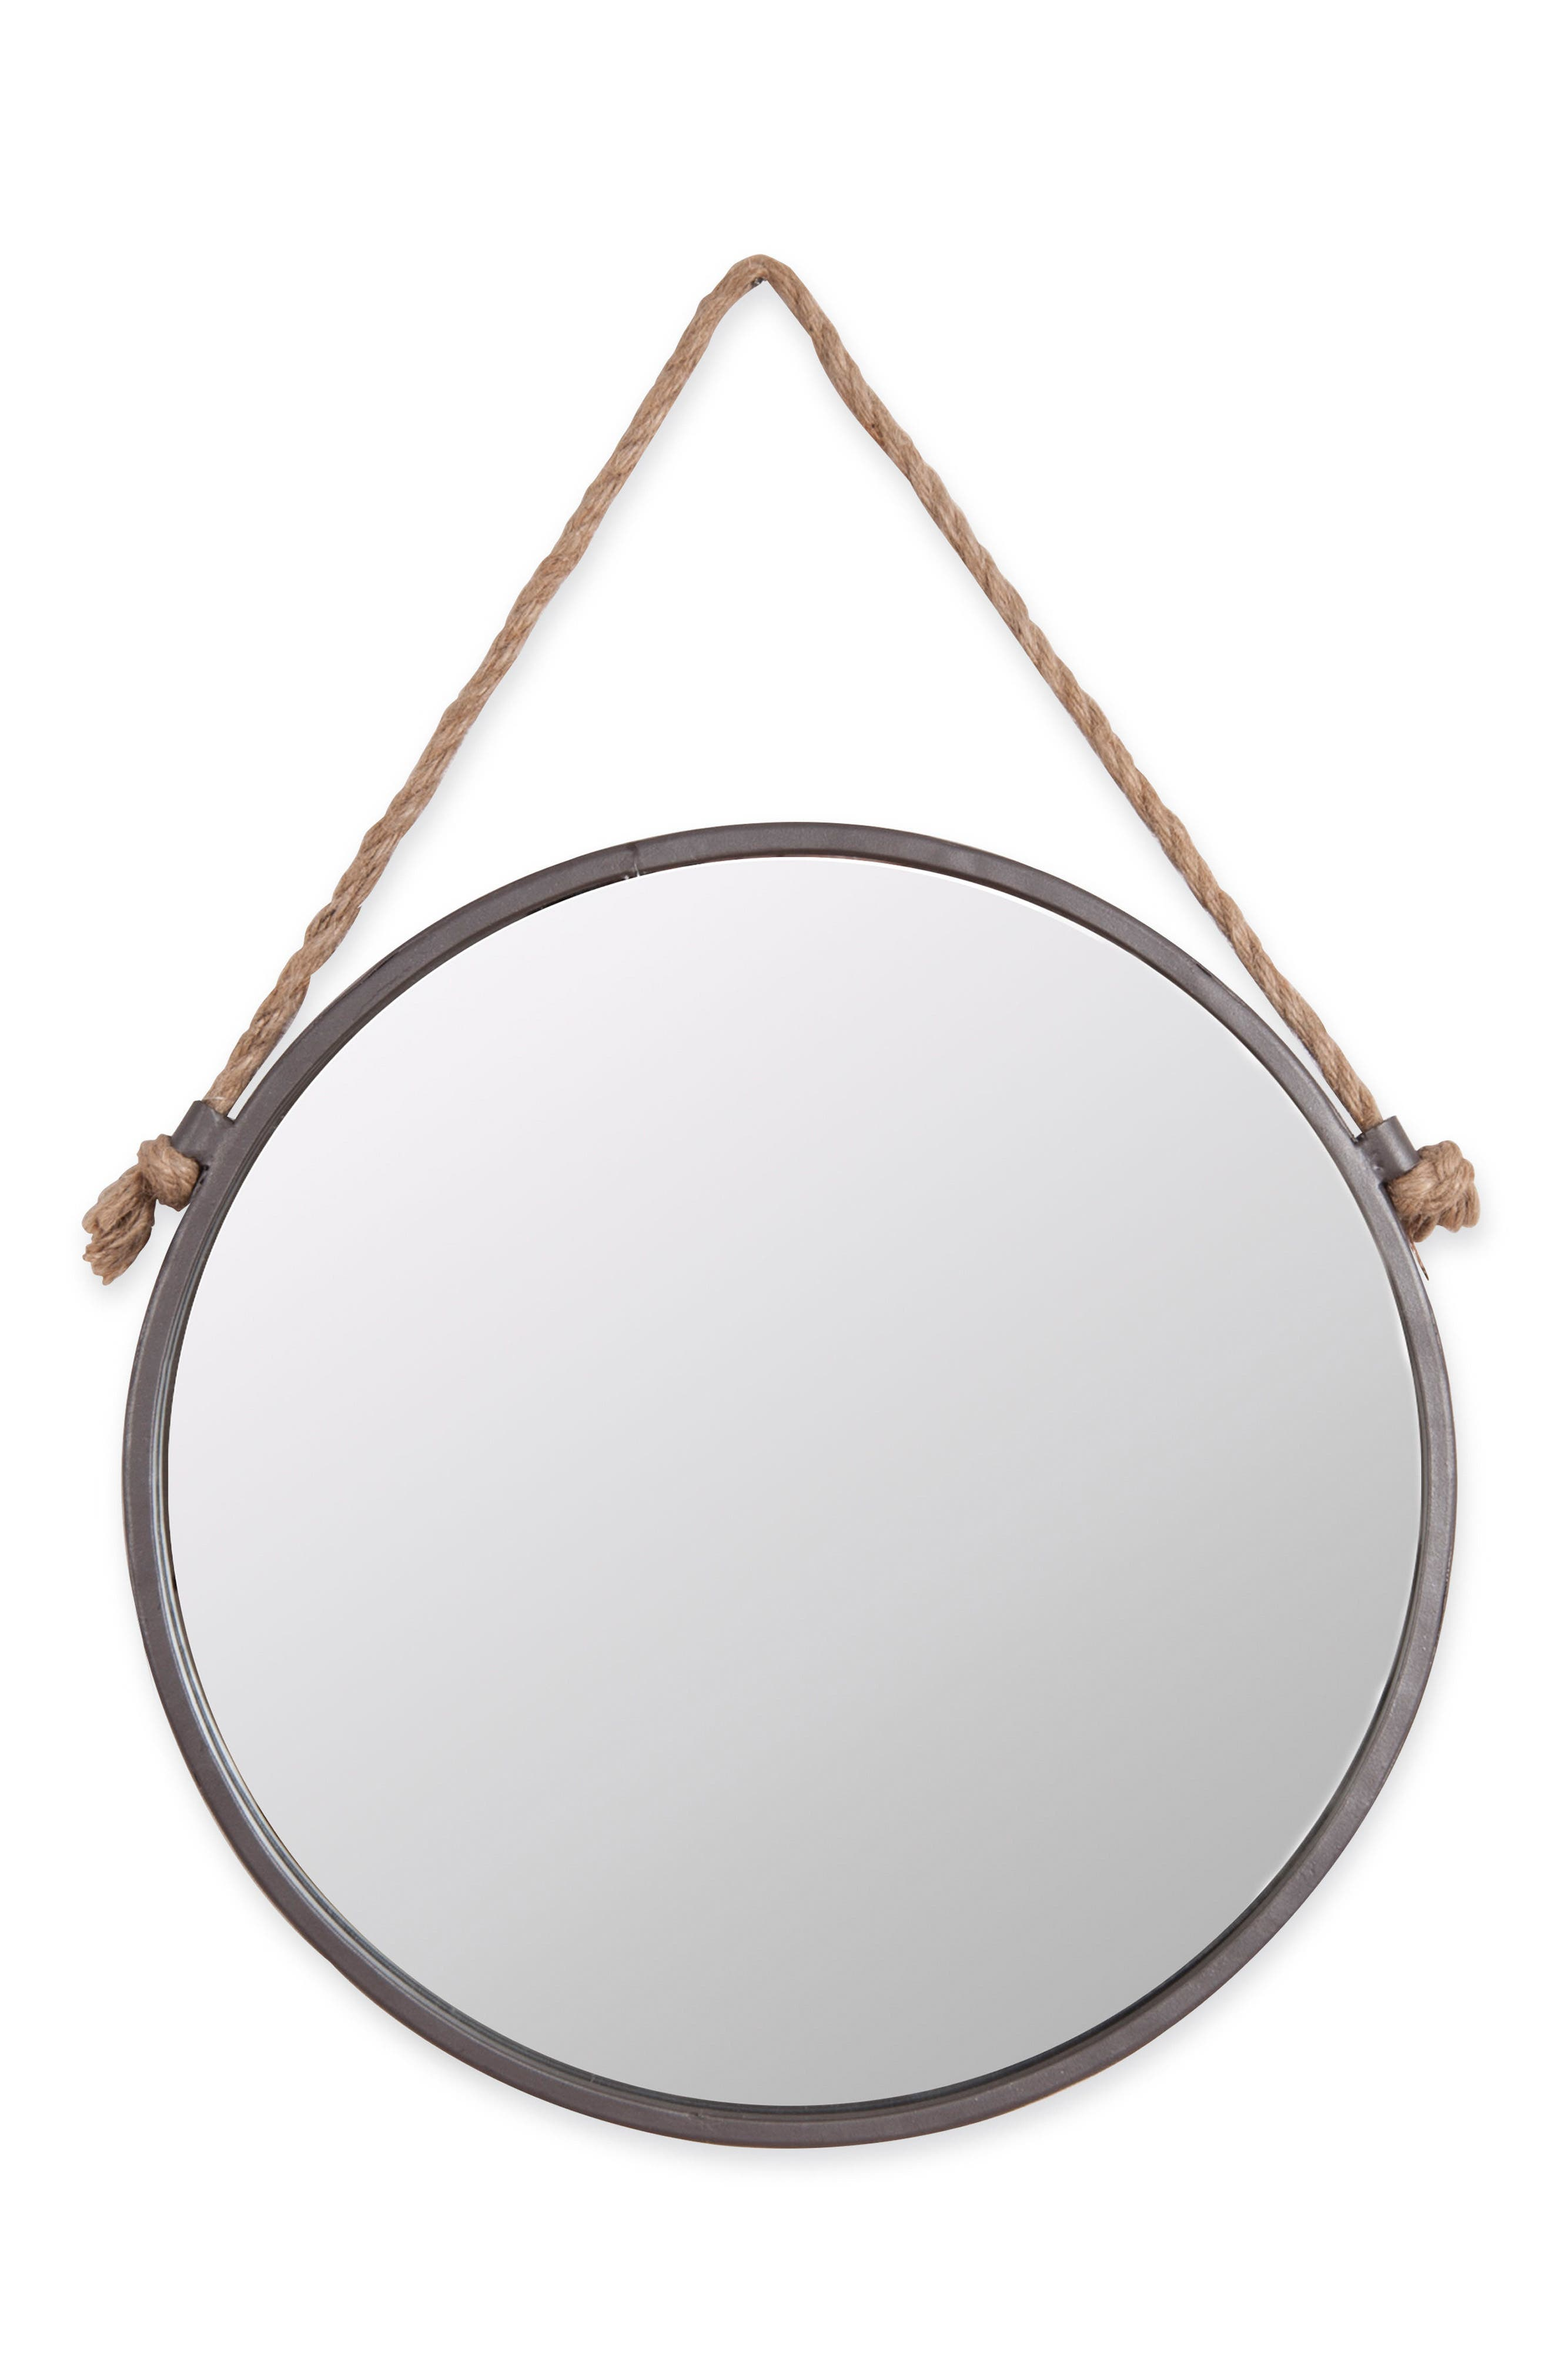 Round Mirror,                         Main,                         color, Metal/ Wood/ Rope